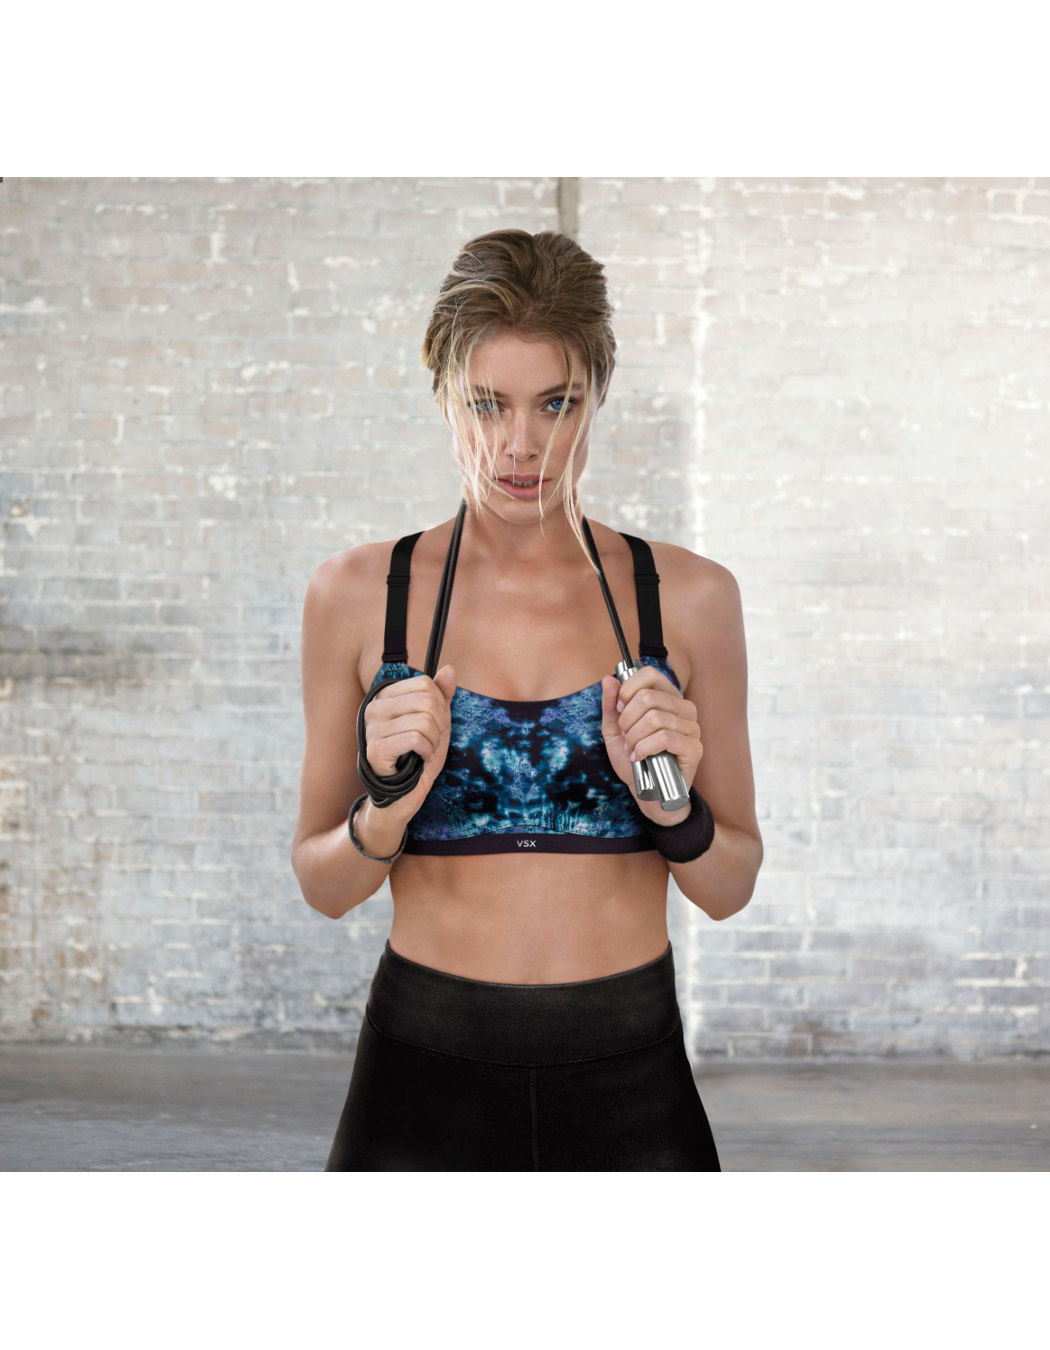 victorias-secret-sport-ultimate-2014-doutzen-sport-bra-hi-res